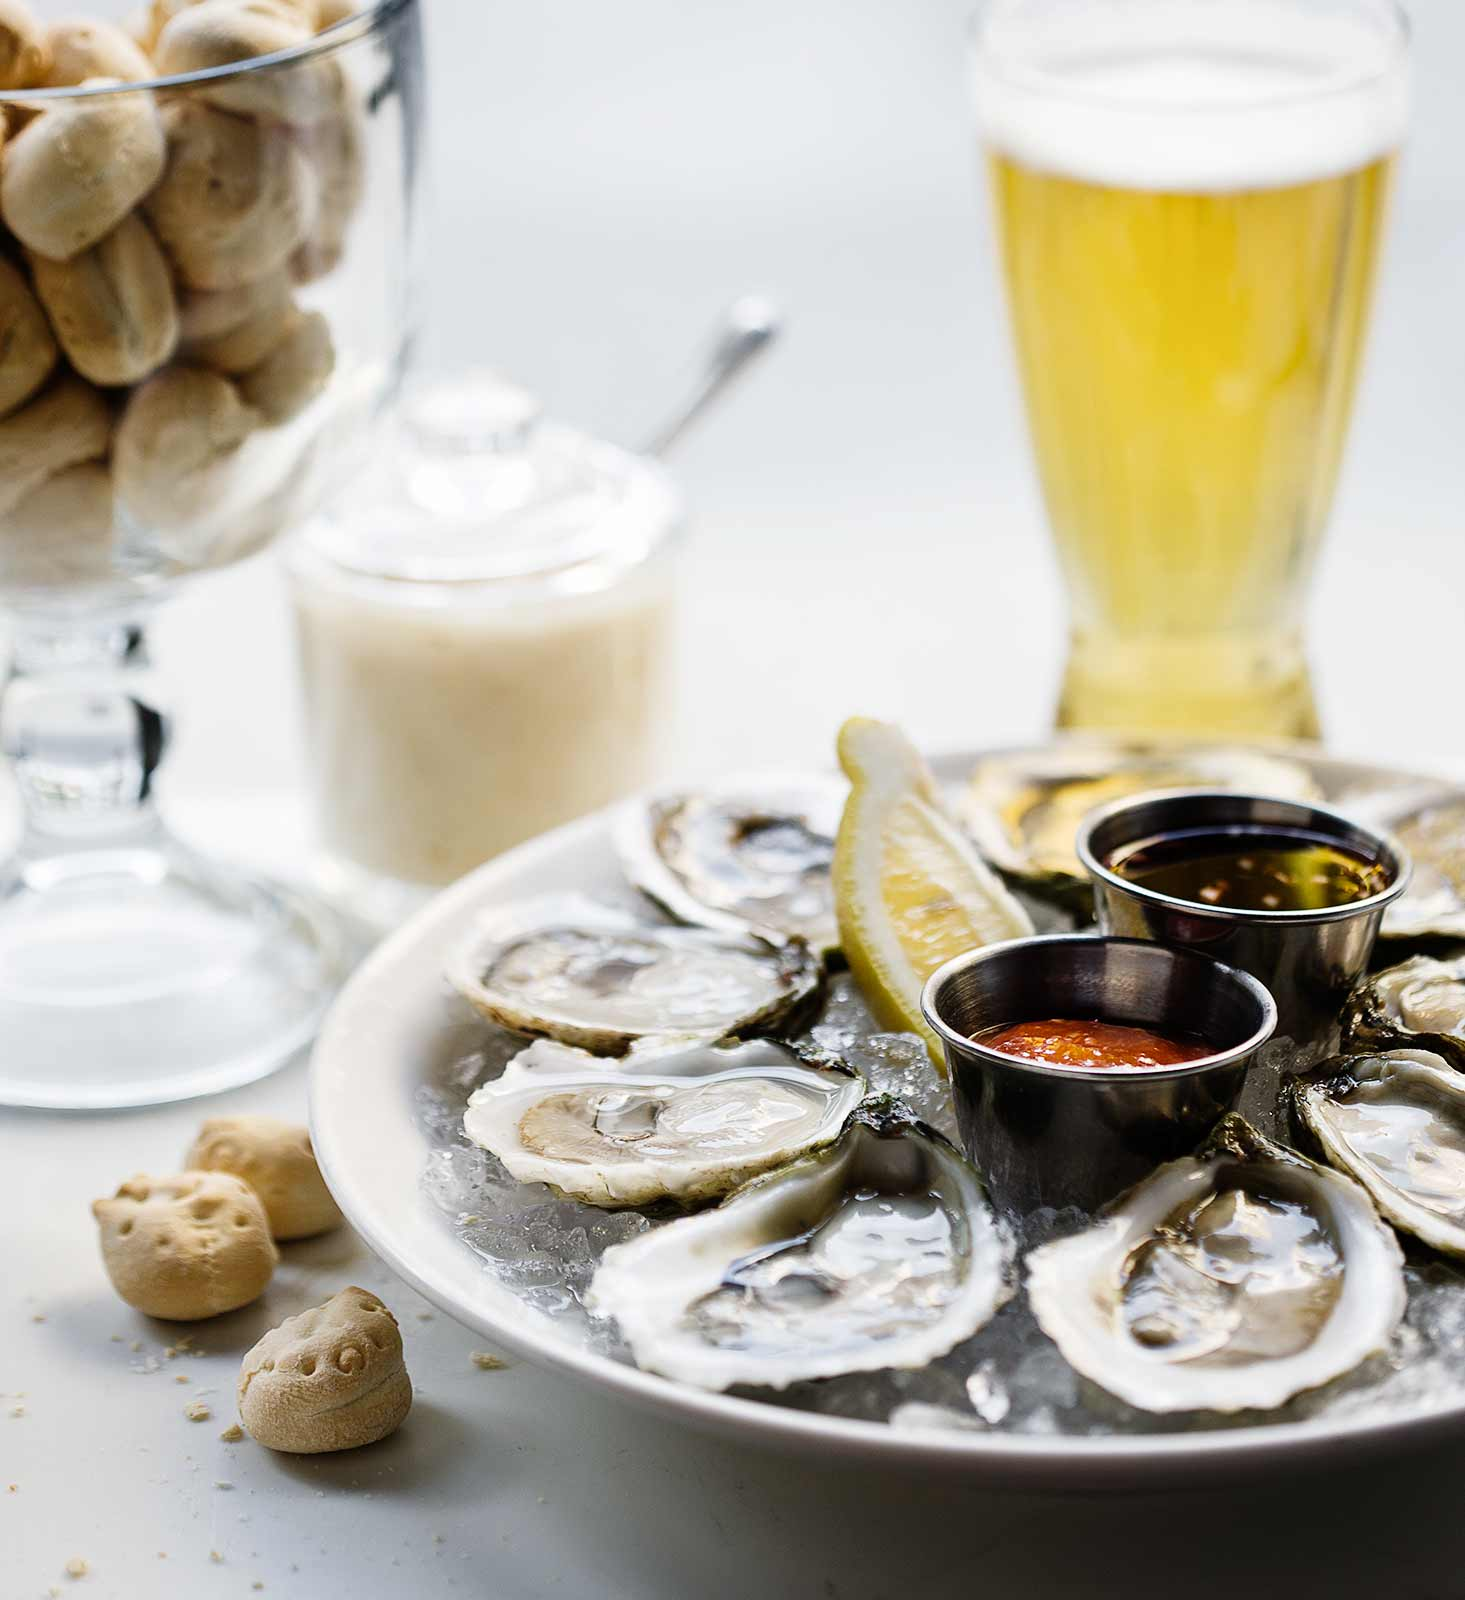 Oysters and beer at a seafood restaurant